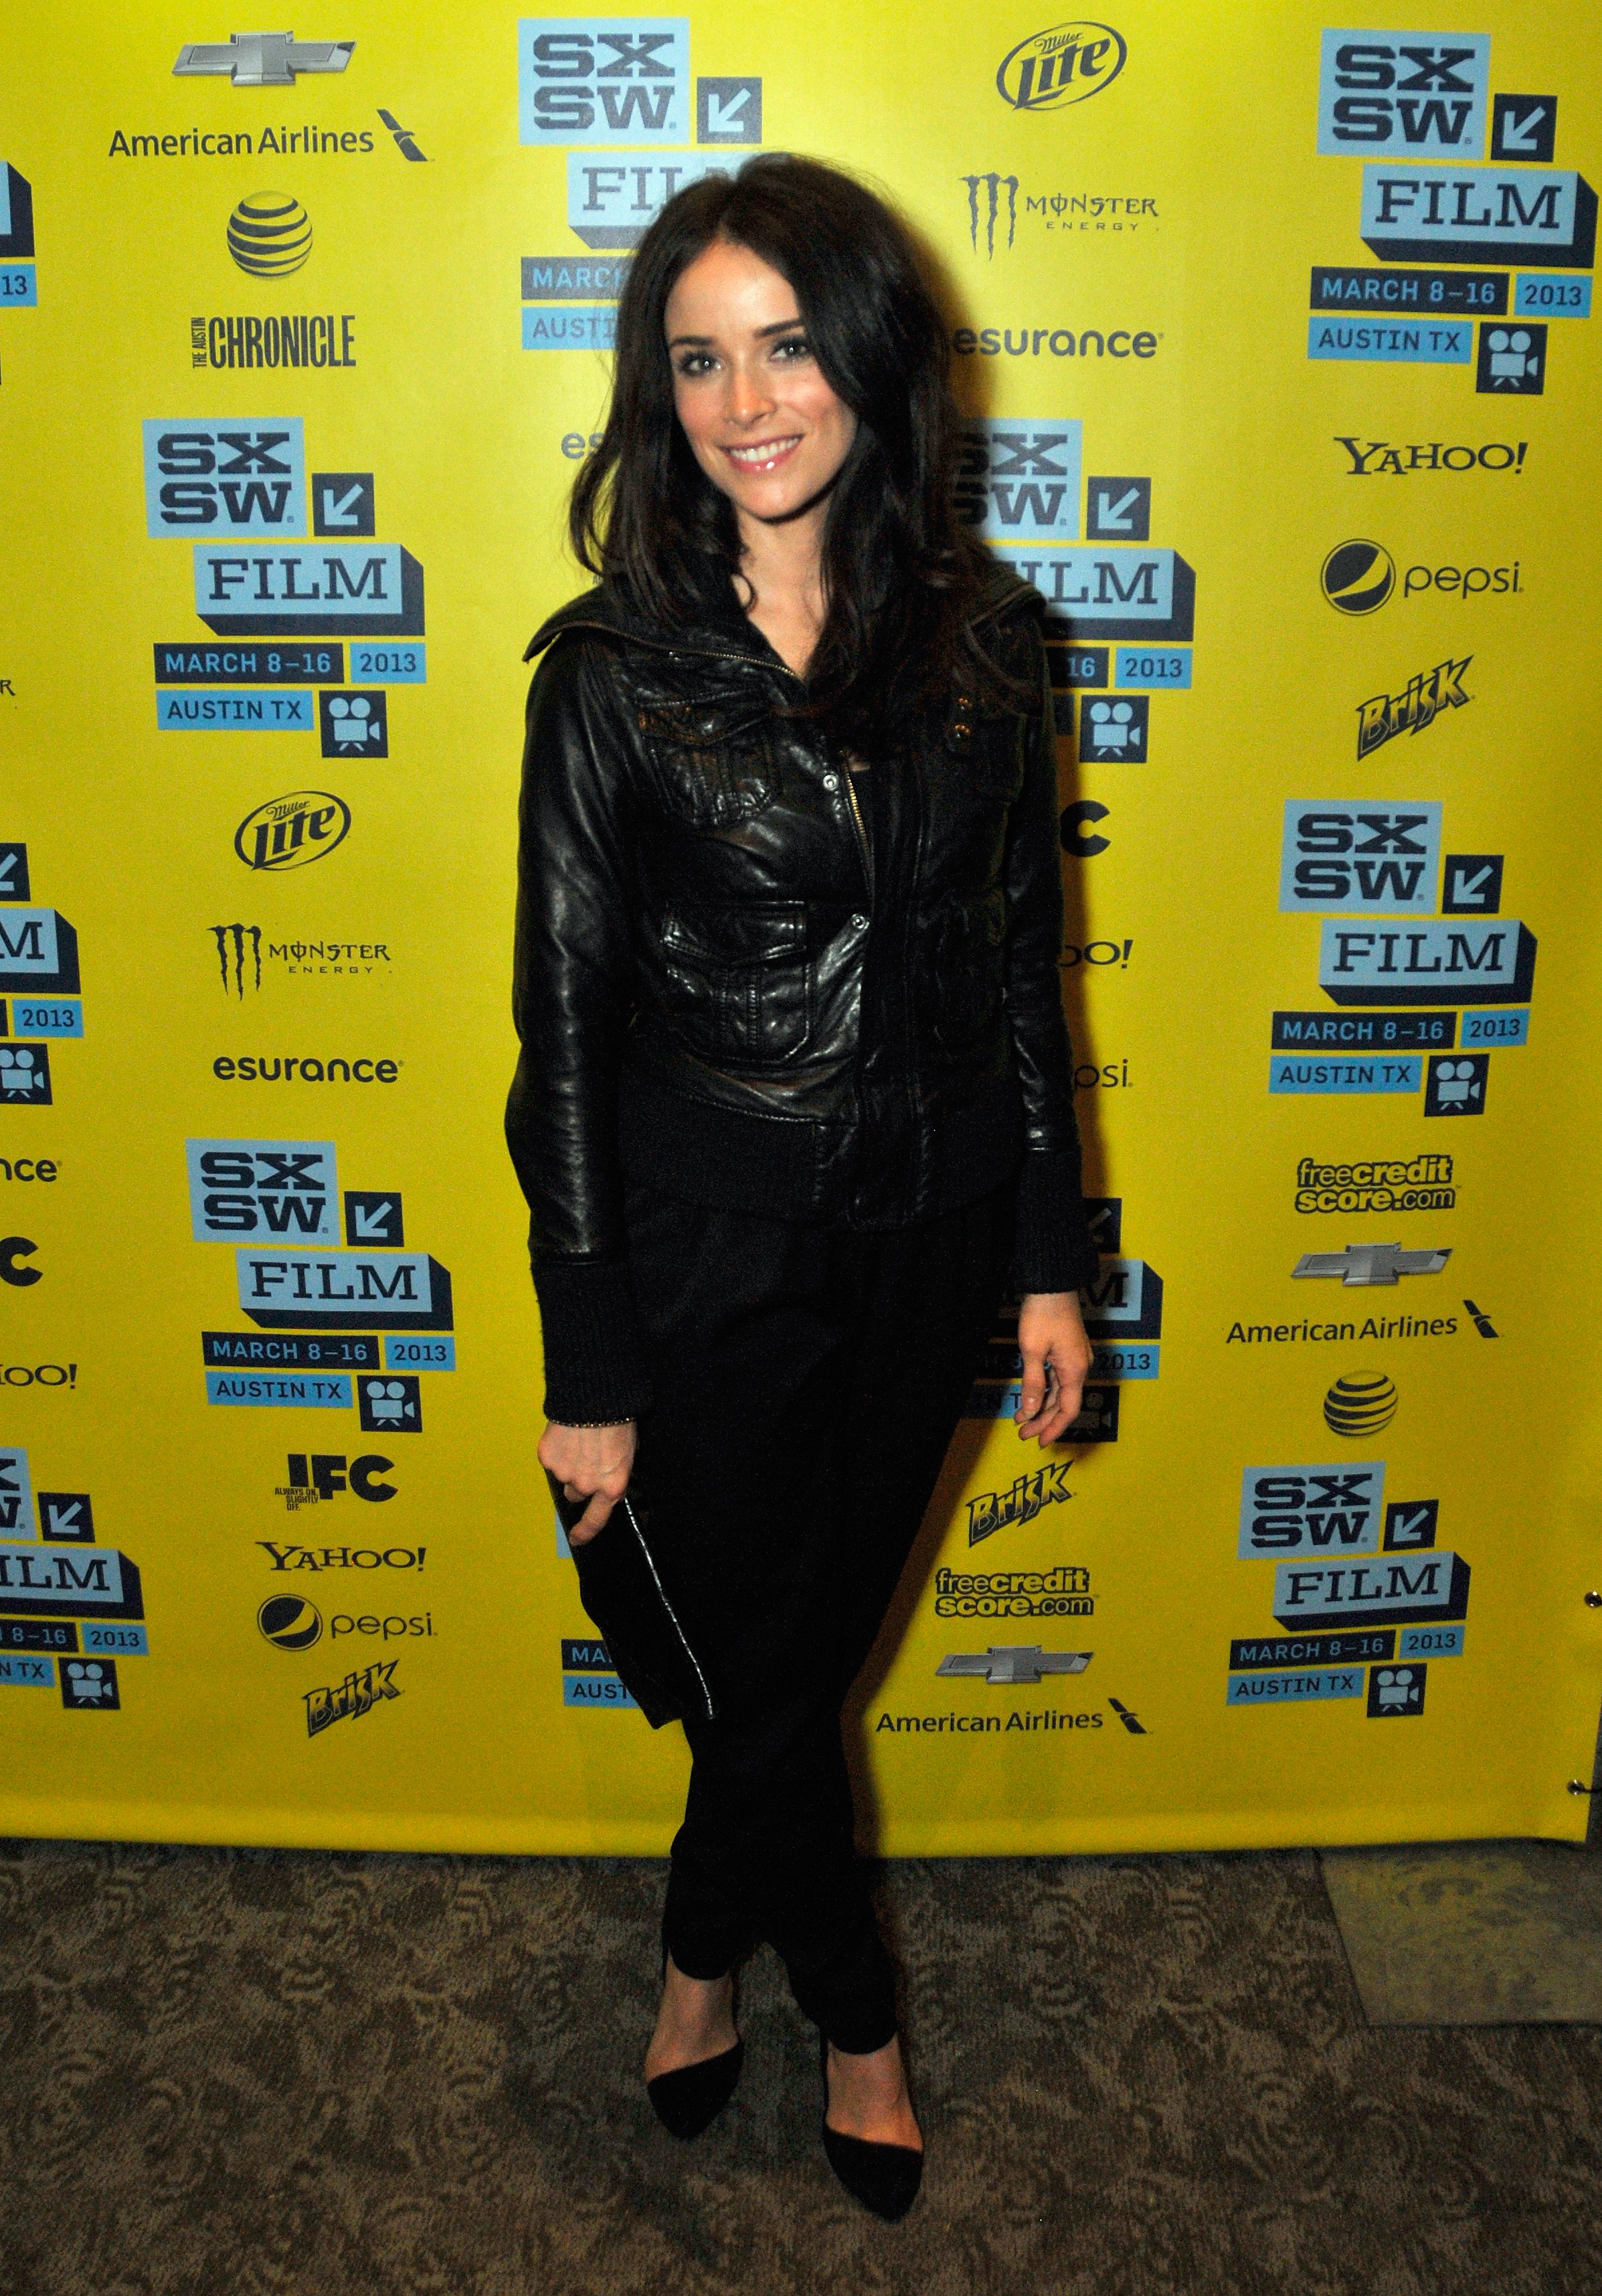 Abigail Spencer looked tough in head-to-toe black, especially thanks to her leather jacket, at the Kilimanjaro premiere at SXSW.